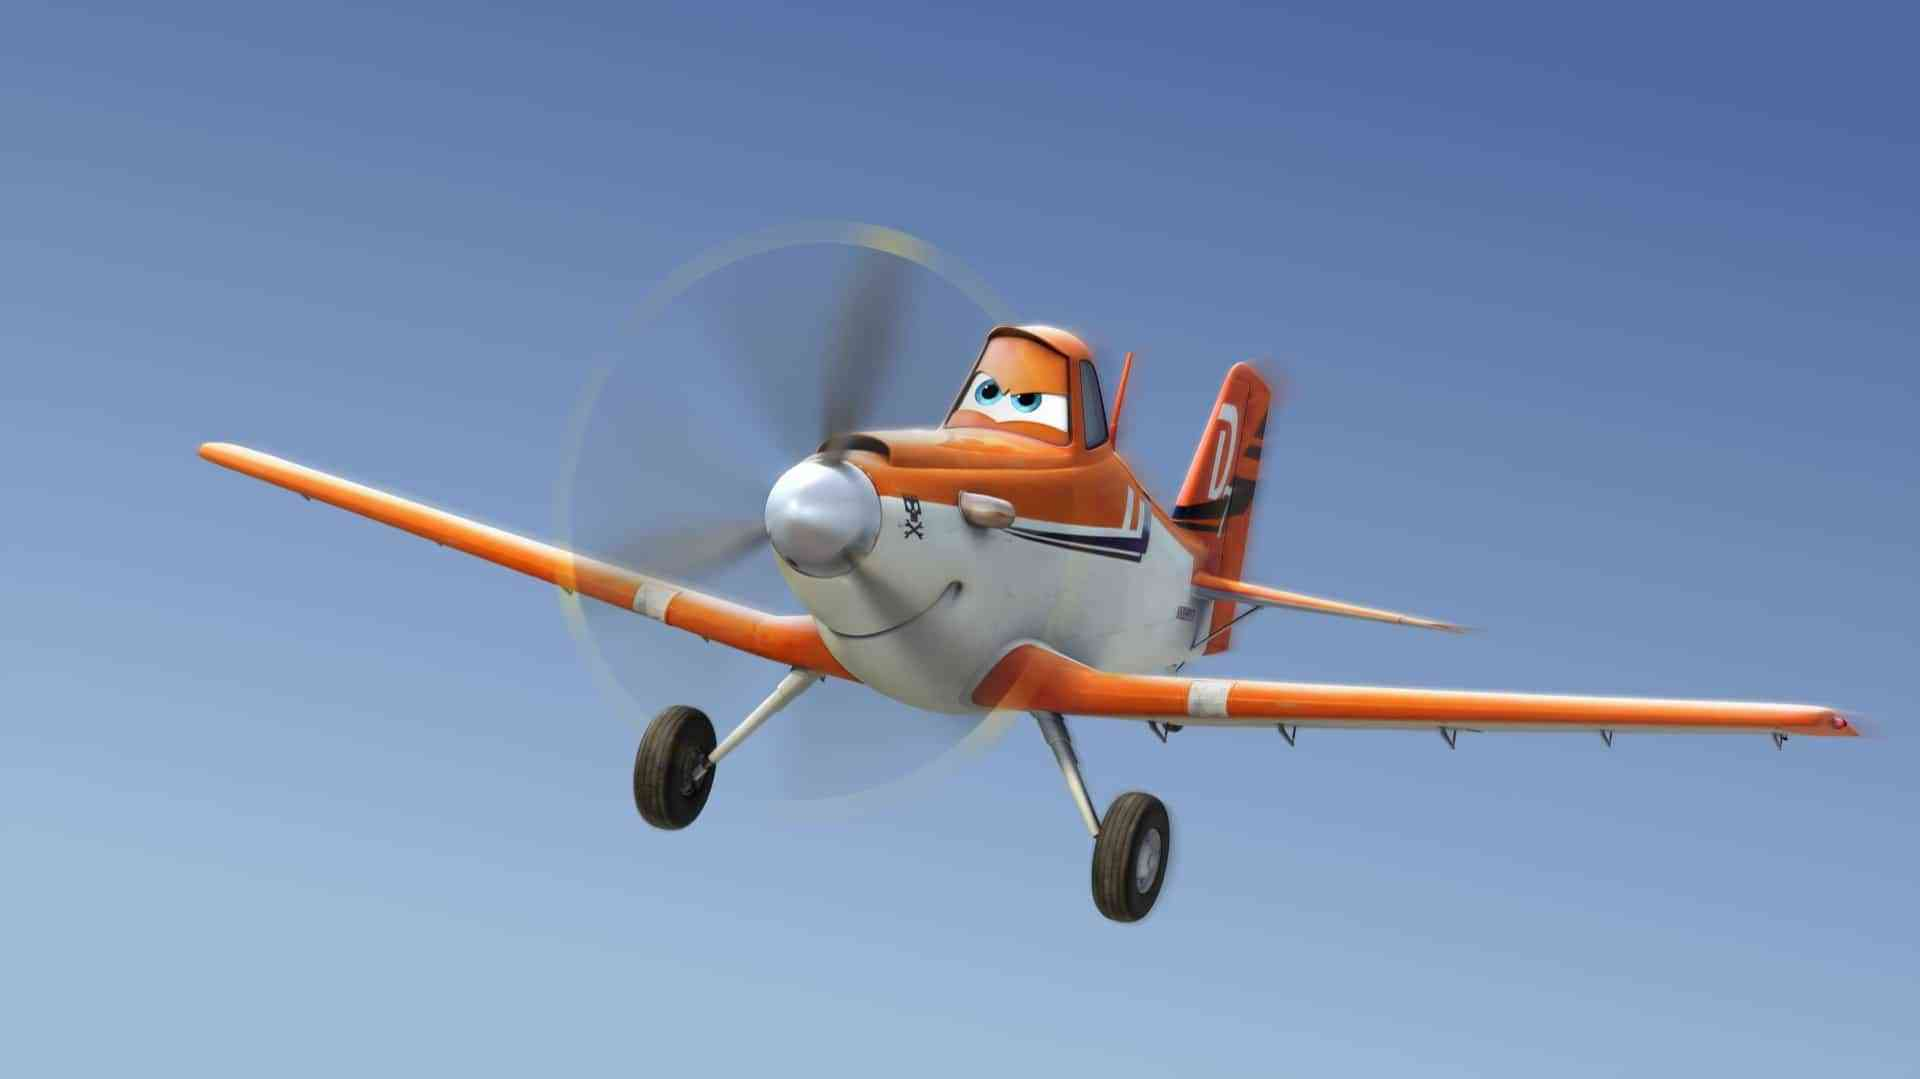 Disney Planes (Wii U) Review - Flying the Friendly Skies